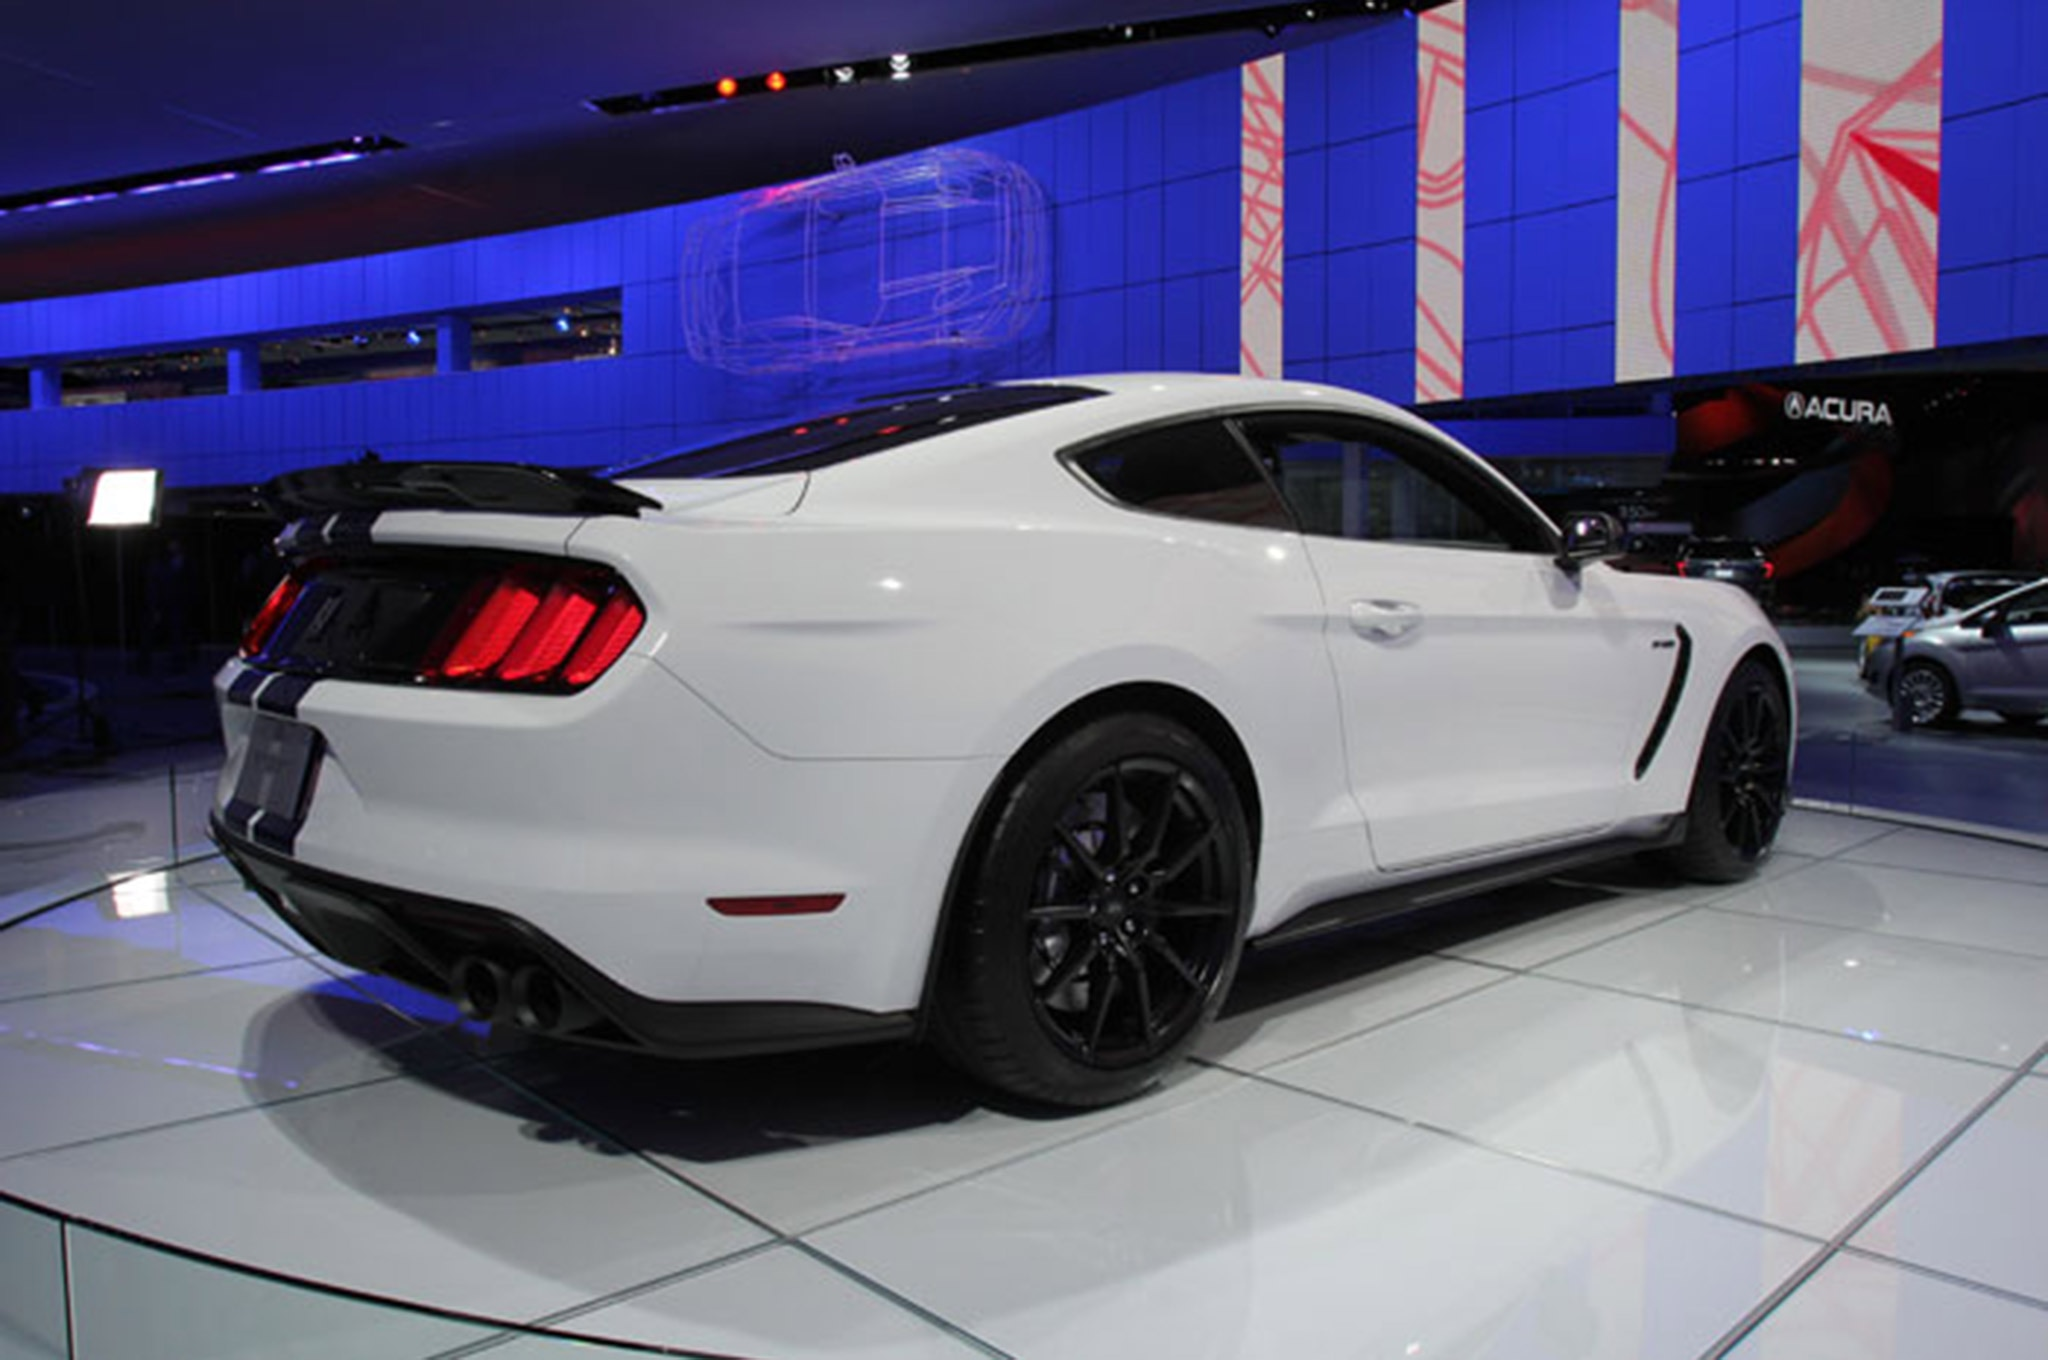 Ford Mustang Shelby Gt350 Vs Gt500 White Rear